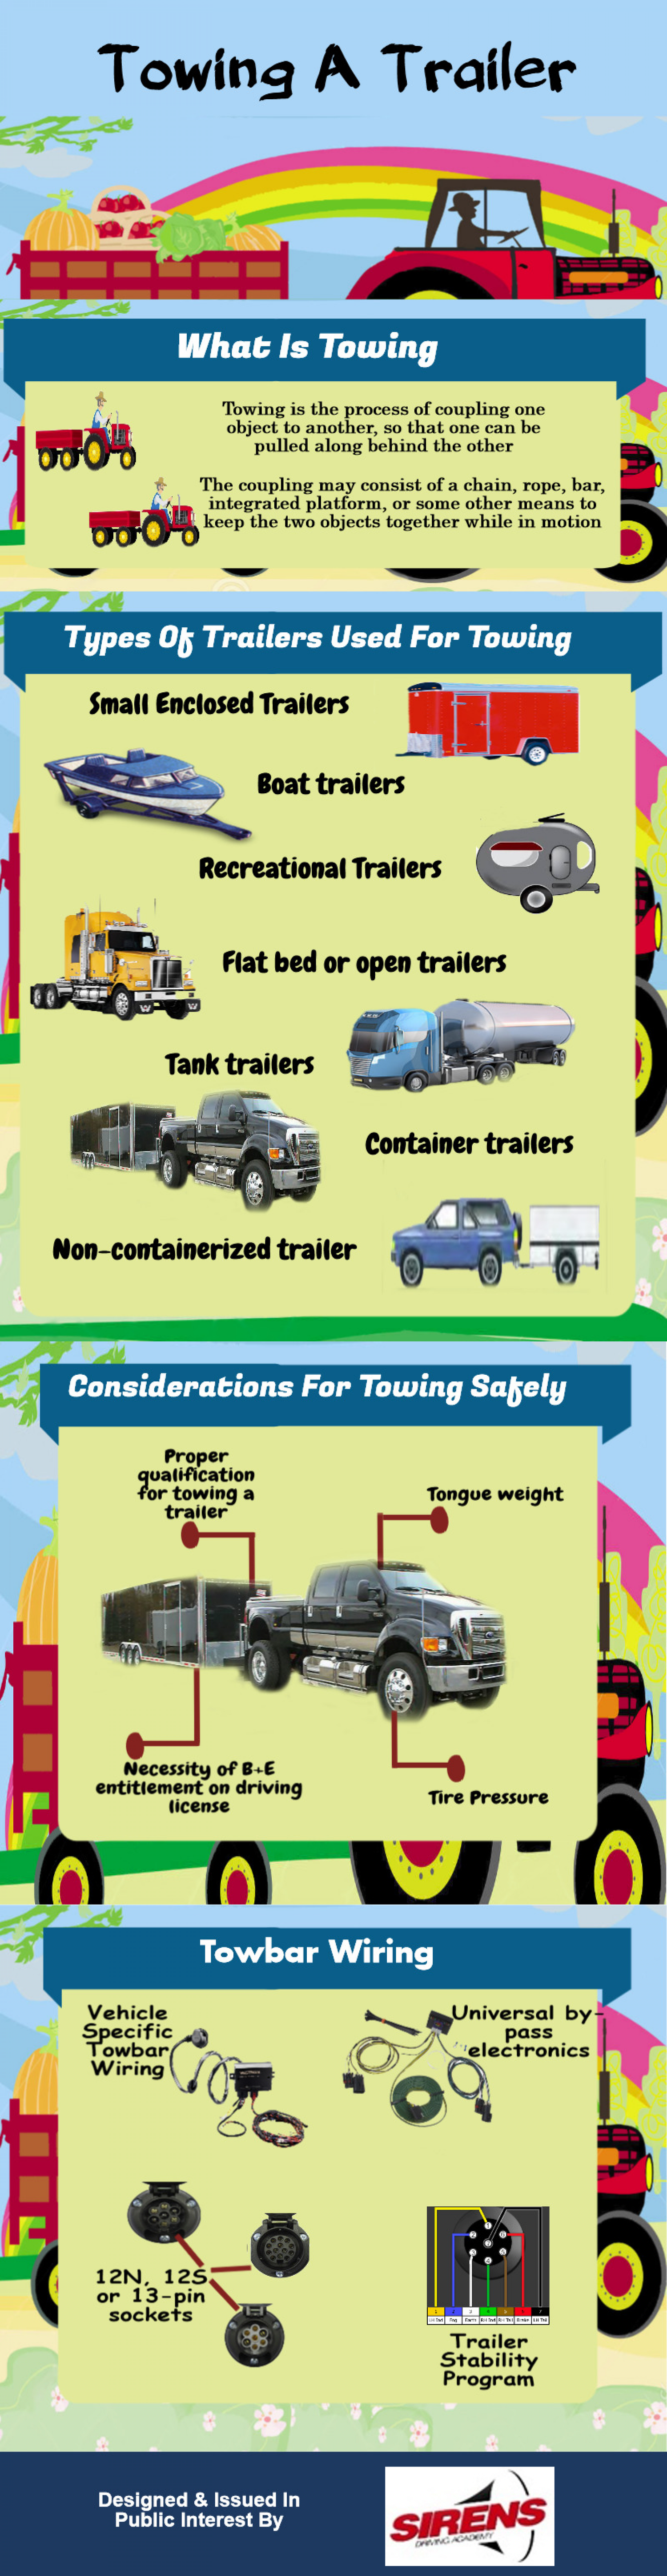 Towing A Trailer Infographic